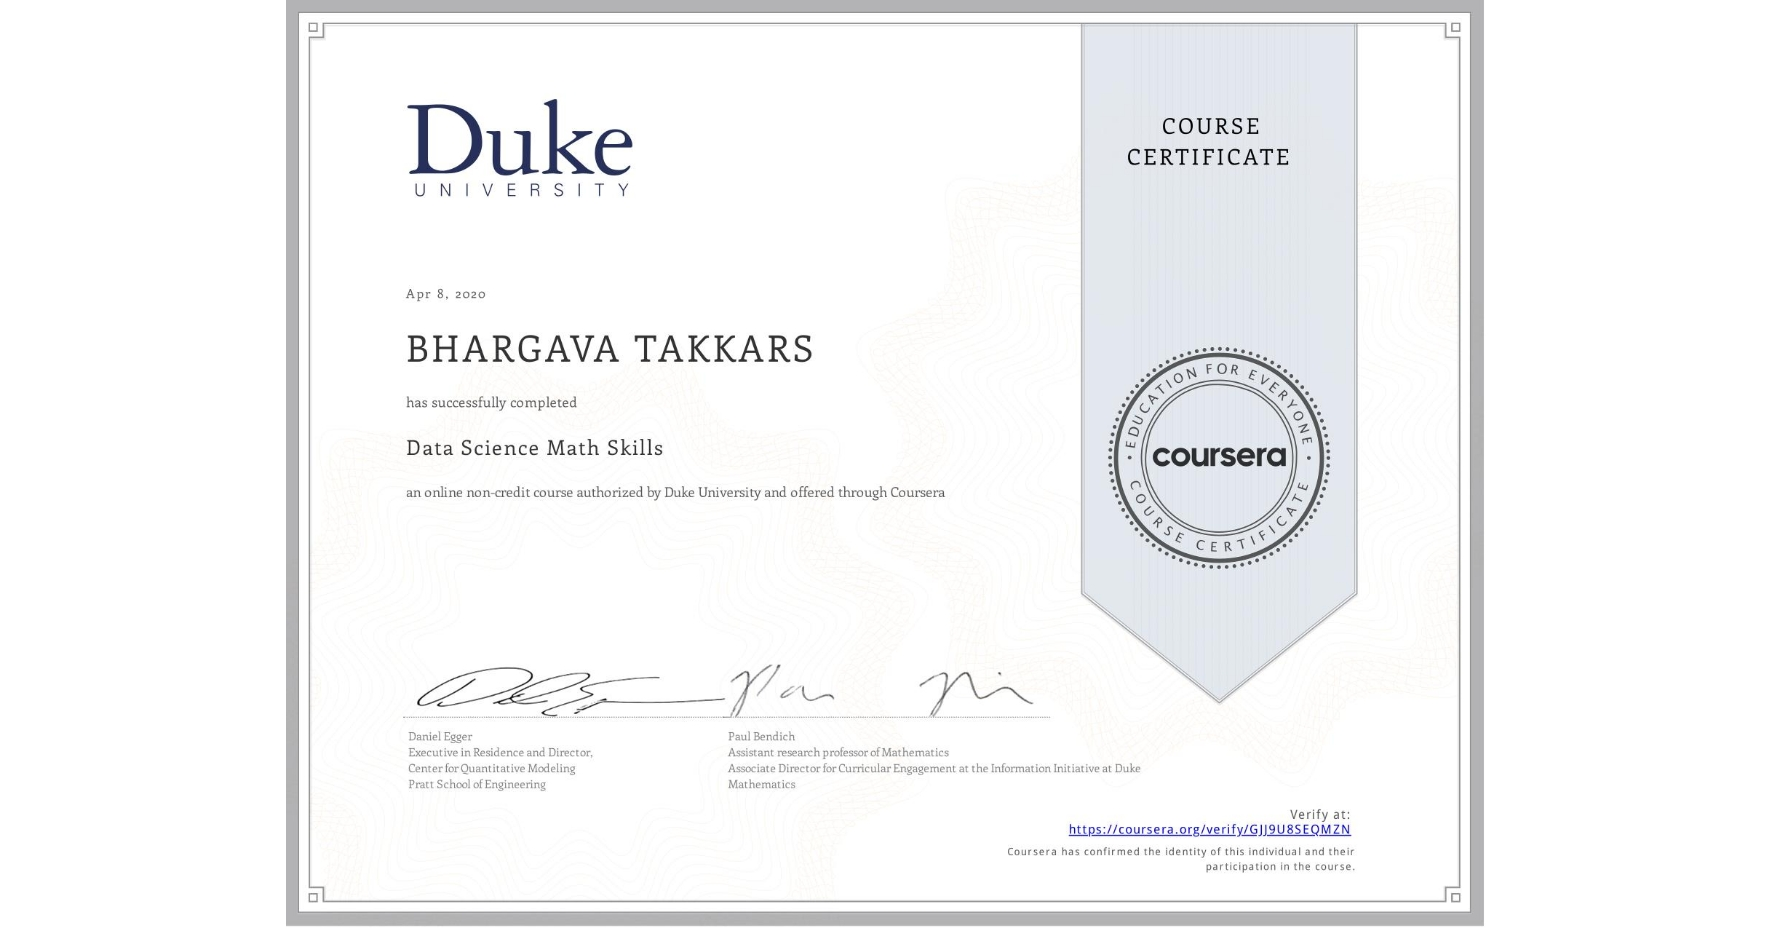 View certificate for BHARGAVA TAKKARS, Data Science Math Skills, an online non-credit course authorized by Duke University and offered through Coursera